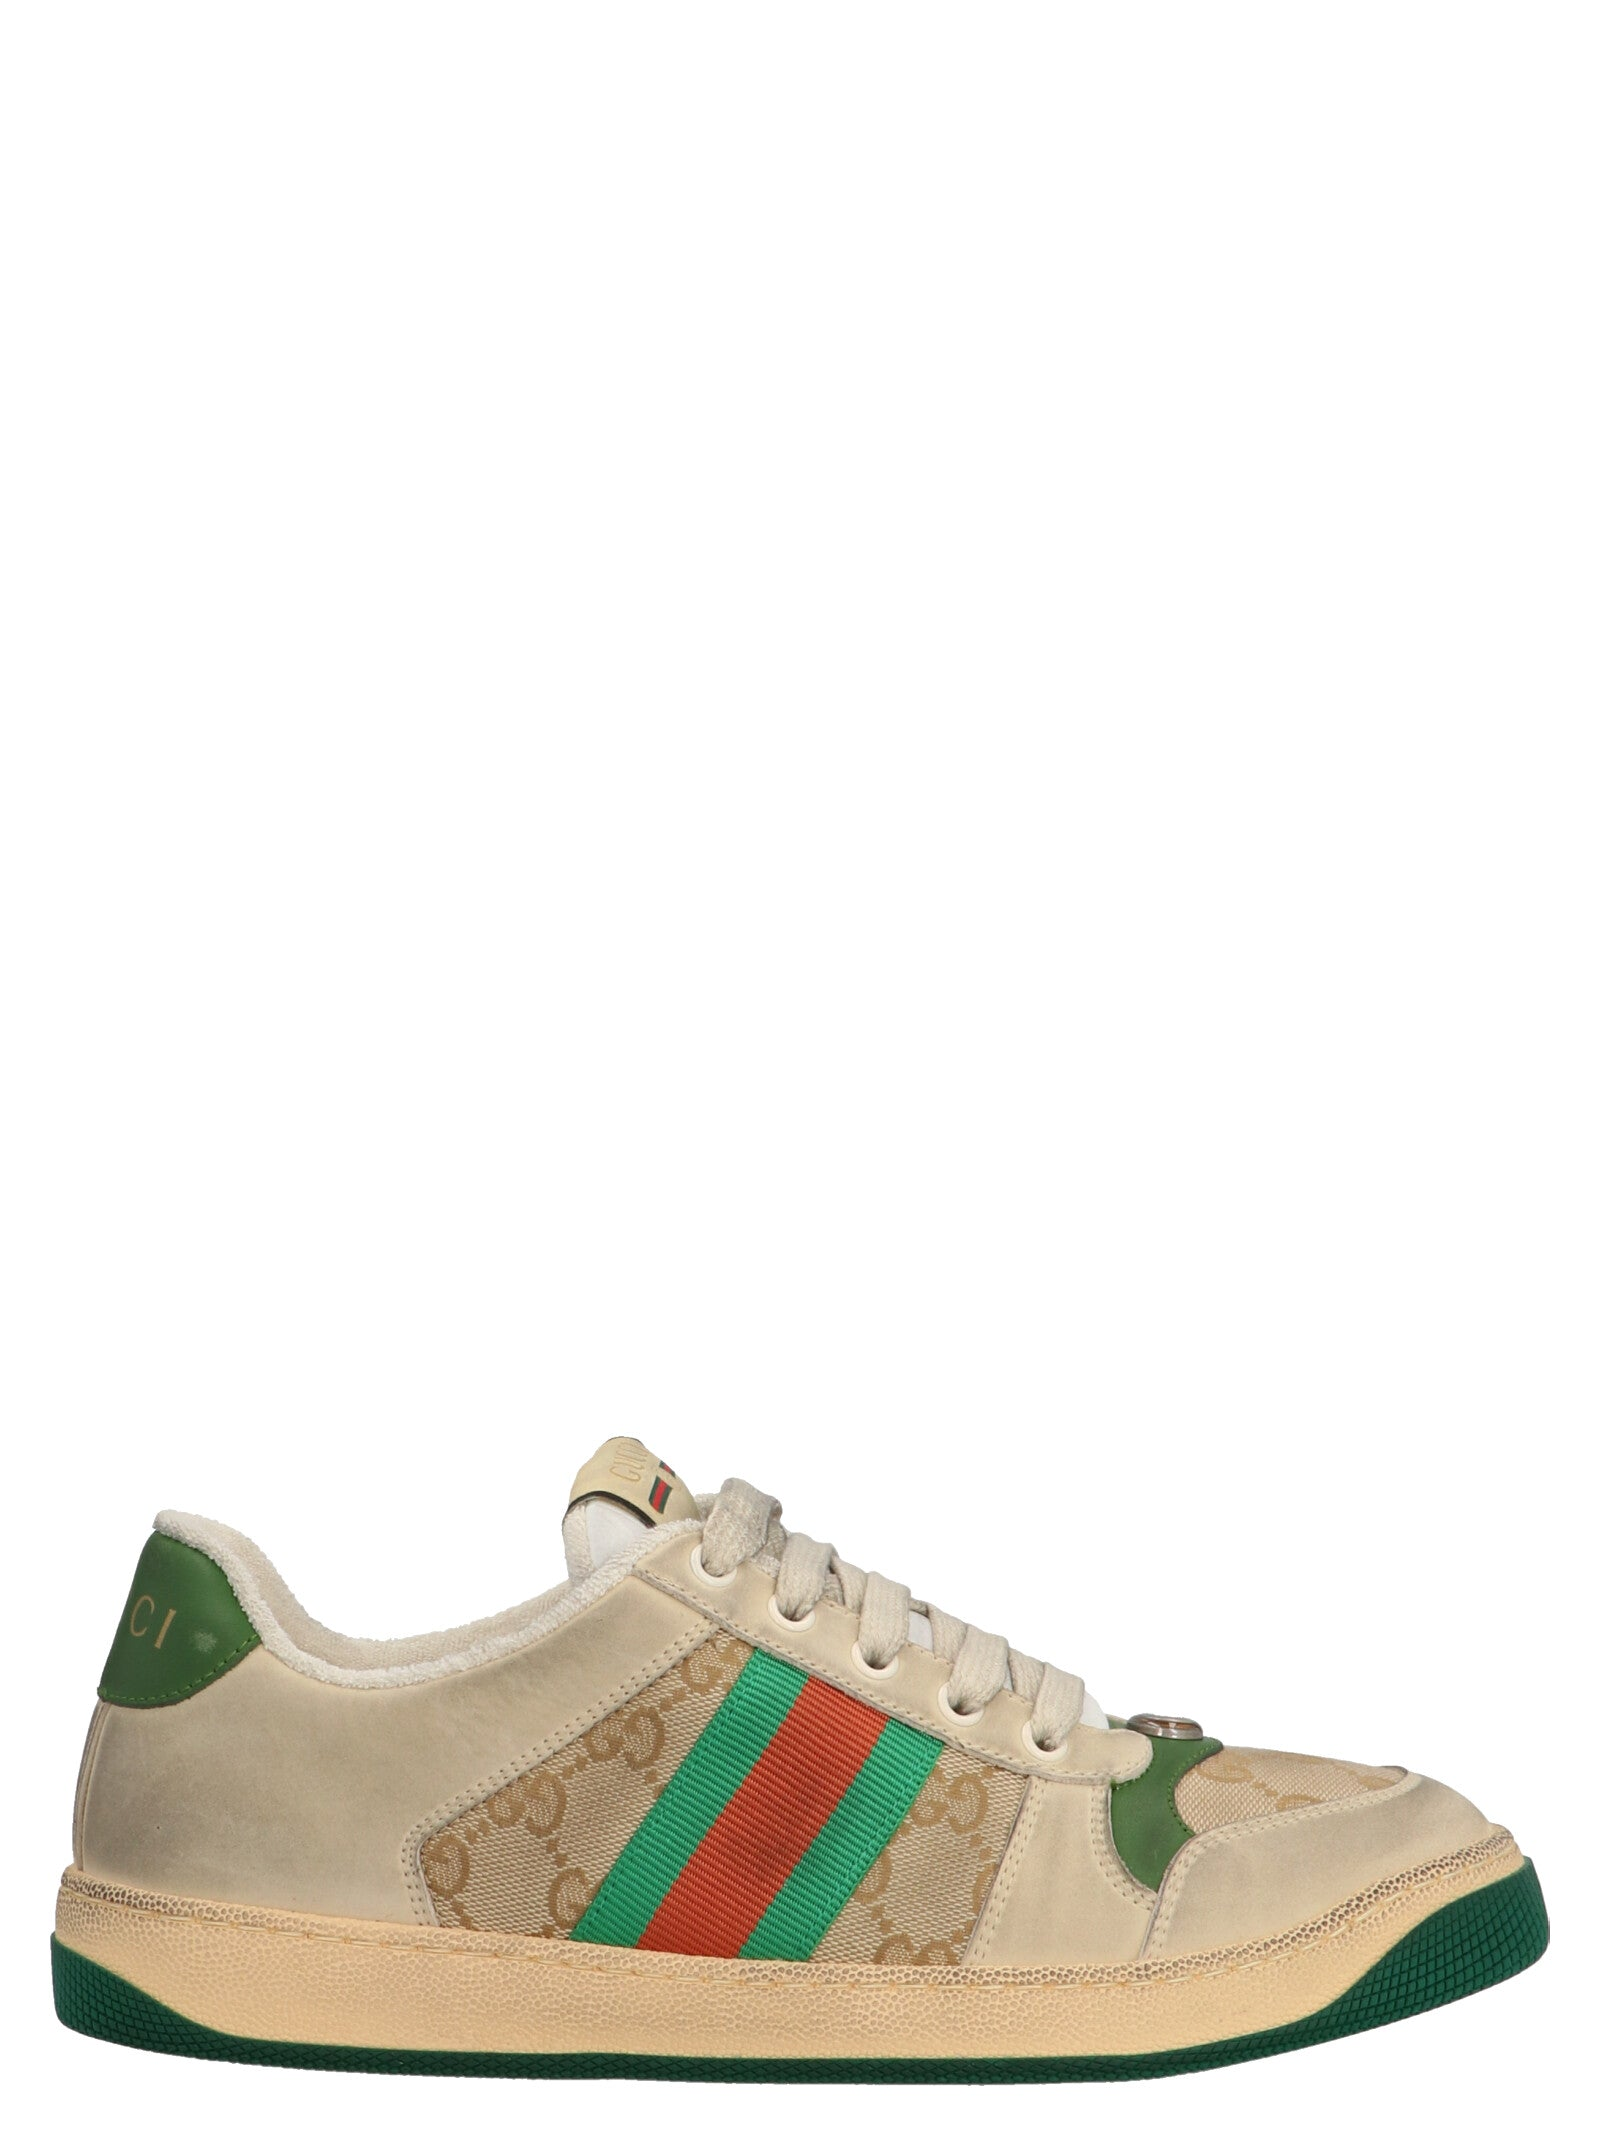 Gucci Leathers GUCCI SCREENER SNEAKERS